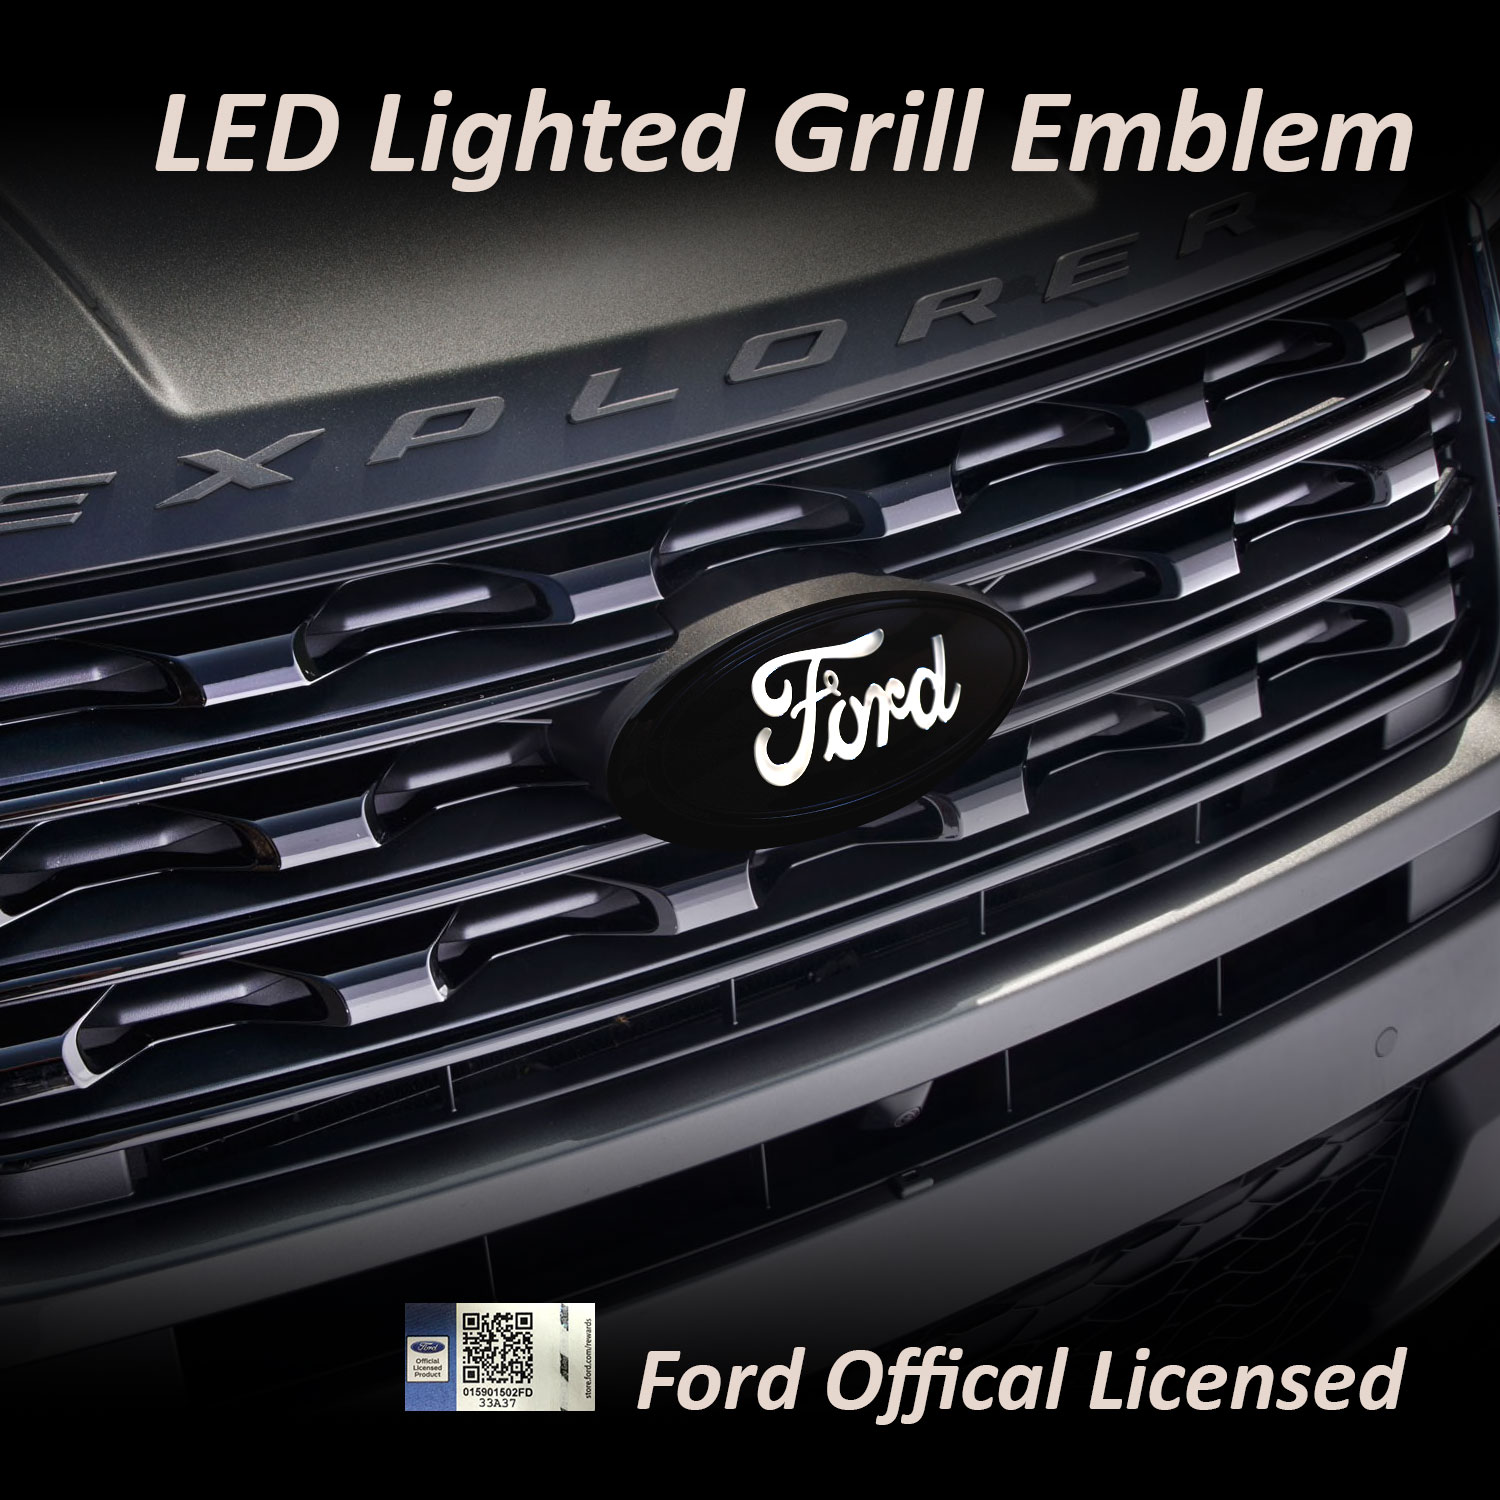 Ford grill emblem on grill